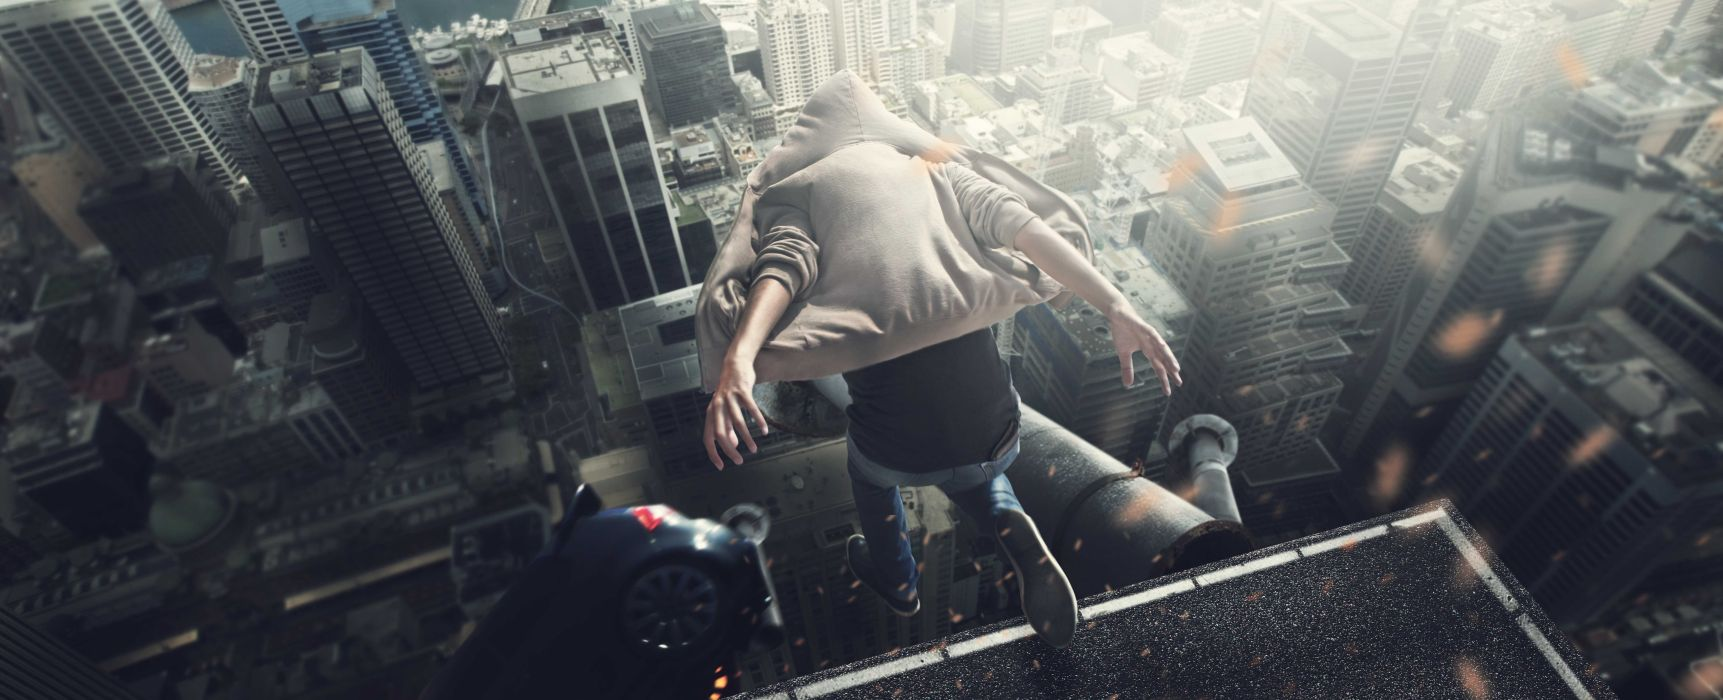 building falling cityscape jumping wallpaper